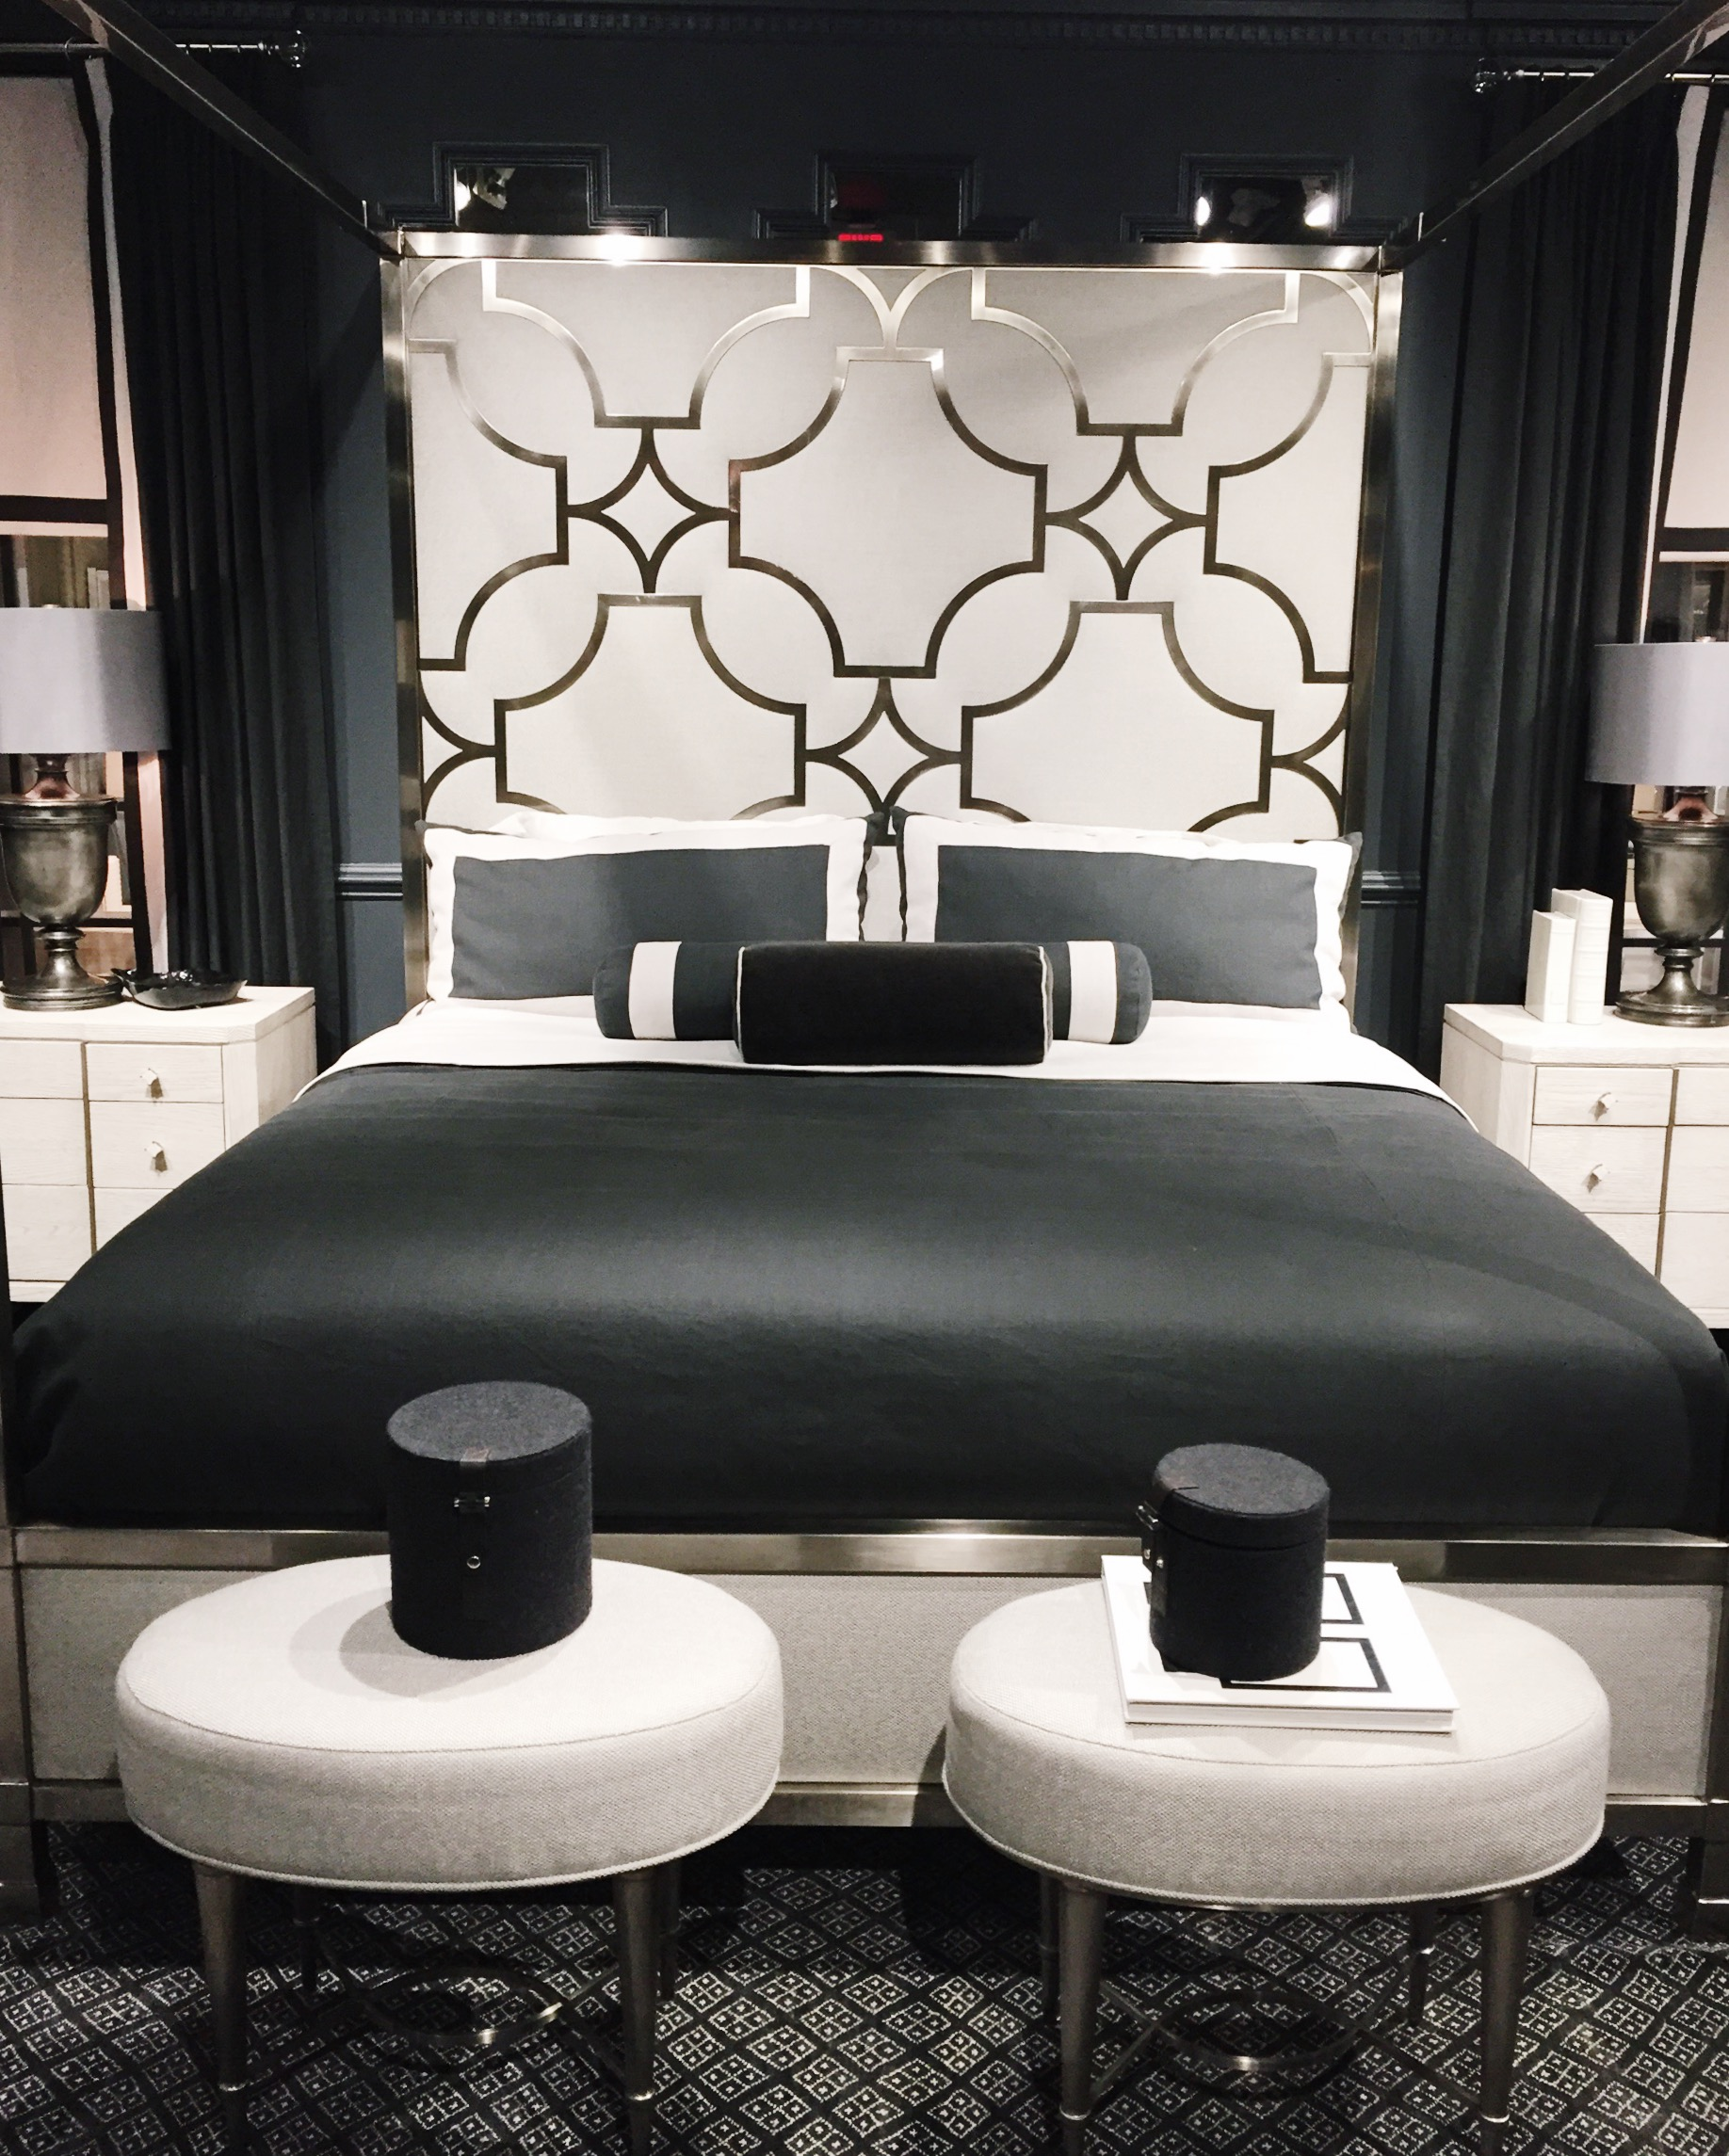 Fabulous headboard by  Bernhardt . Perfect start for a Black & White glam bedroom